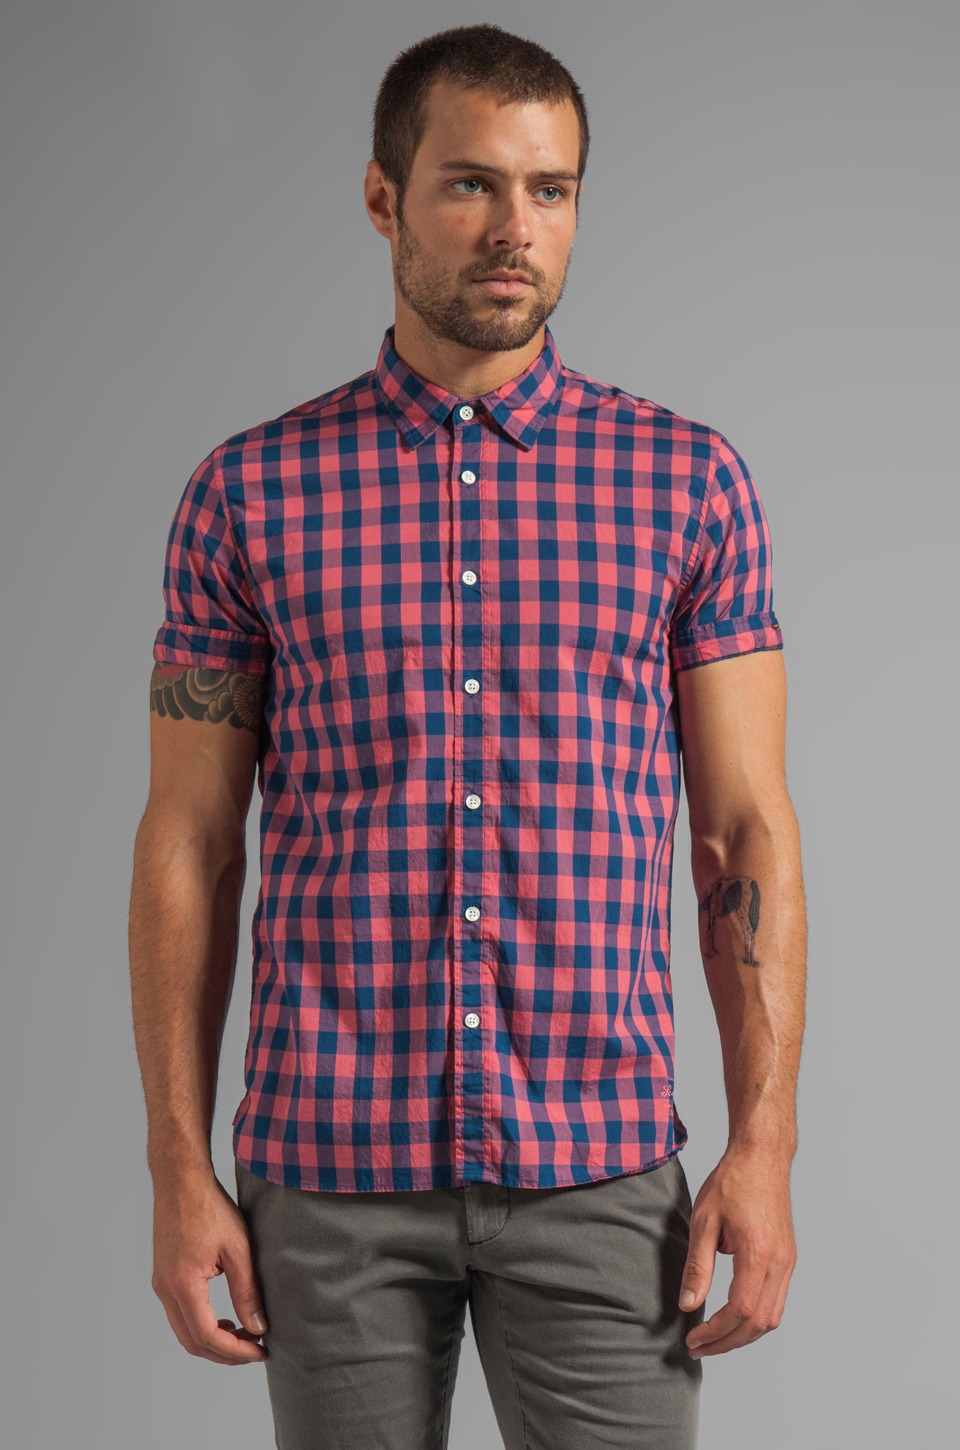 Scotch & Soda S/S Woven Shirt in Blue/Pink